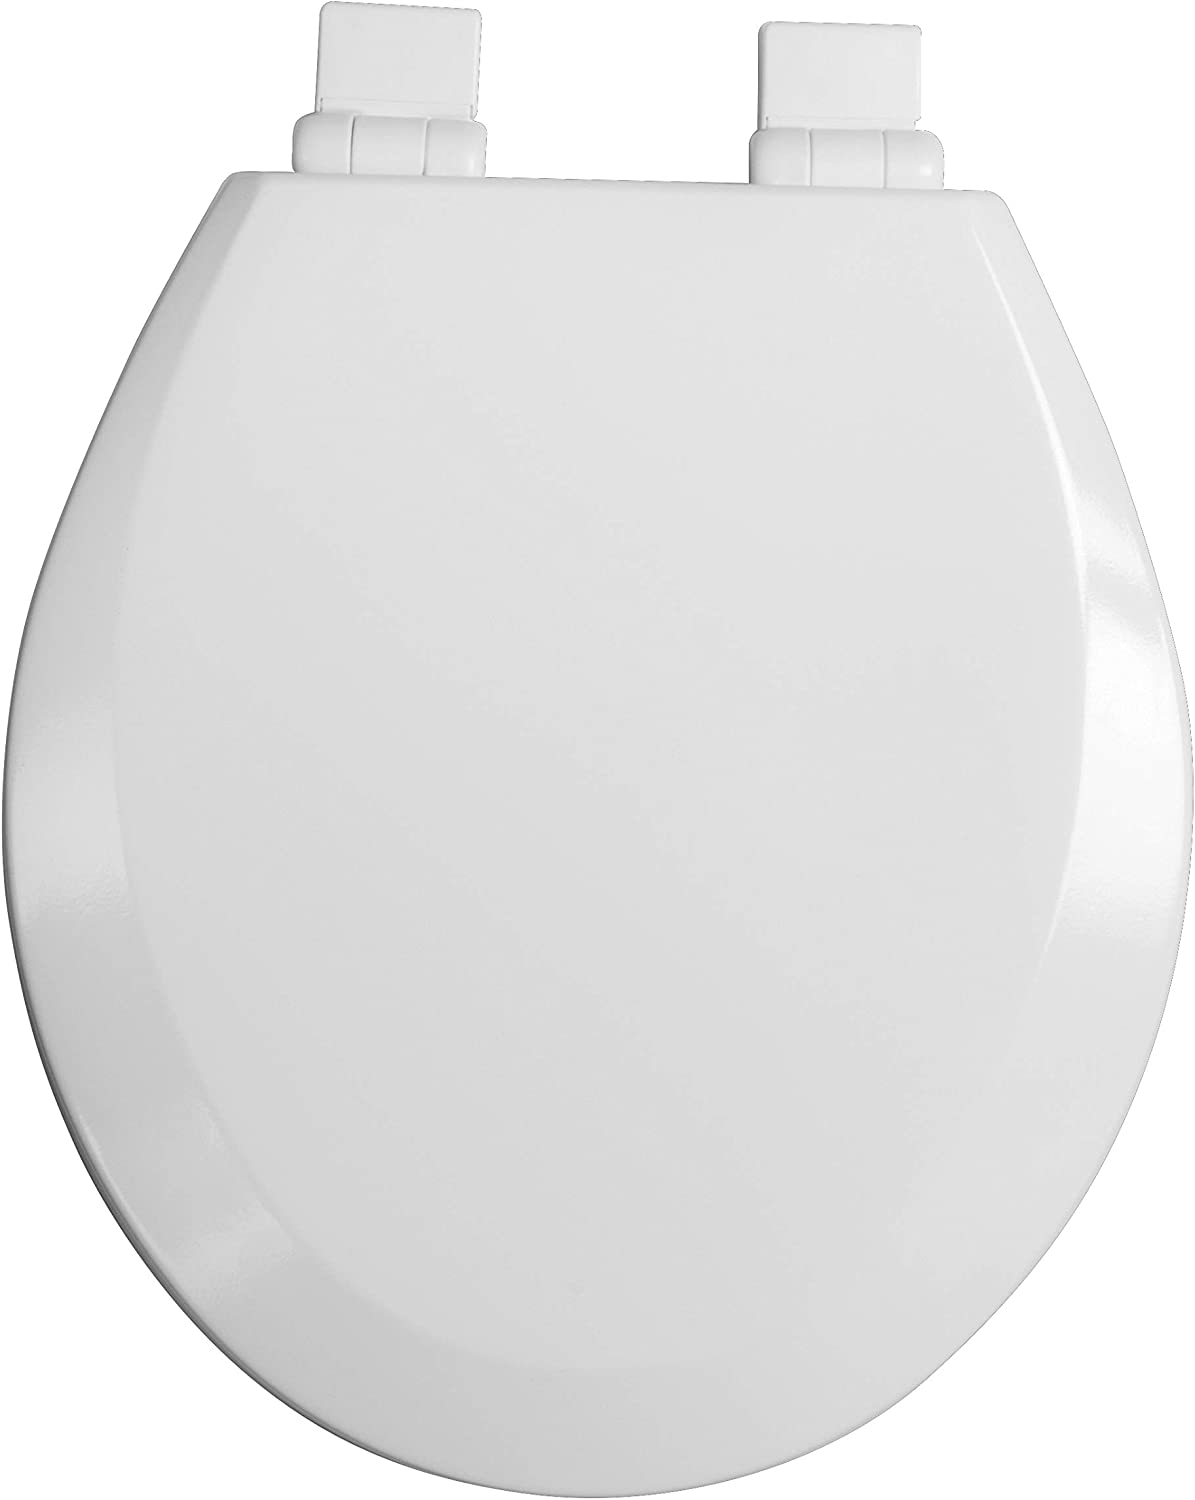 Croydex WL800622AZH Toilet Seat White Gifts Wood Molded Round Long Beach Mall